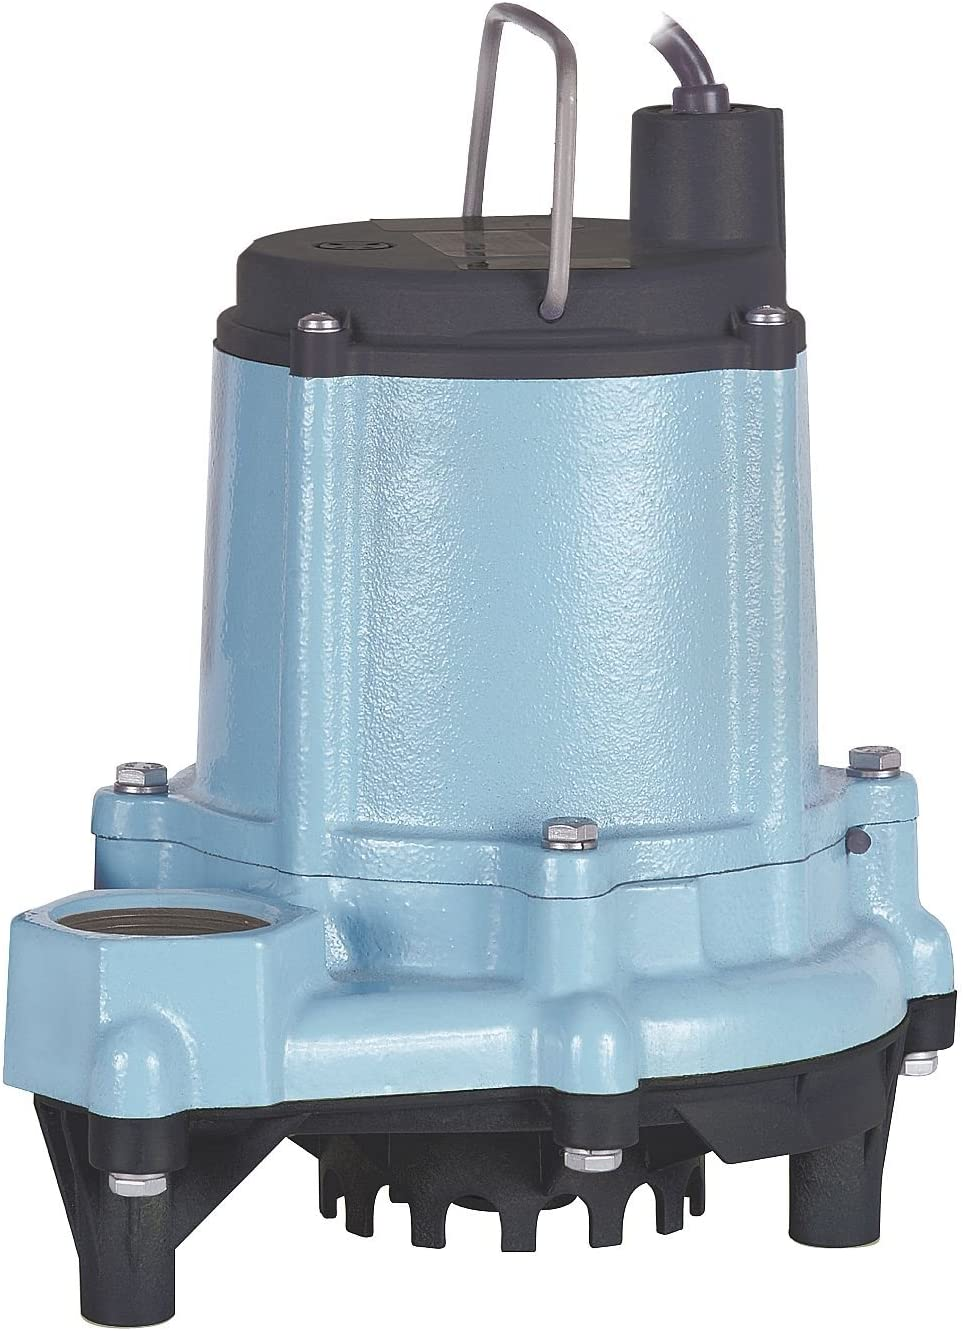 Little Giant 8-CIM 4/10 HP, 45 GPM - Manual Submersible Sump Pump, 25' Power Cord (508058)